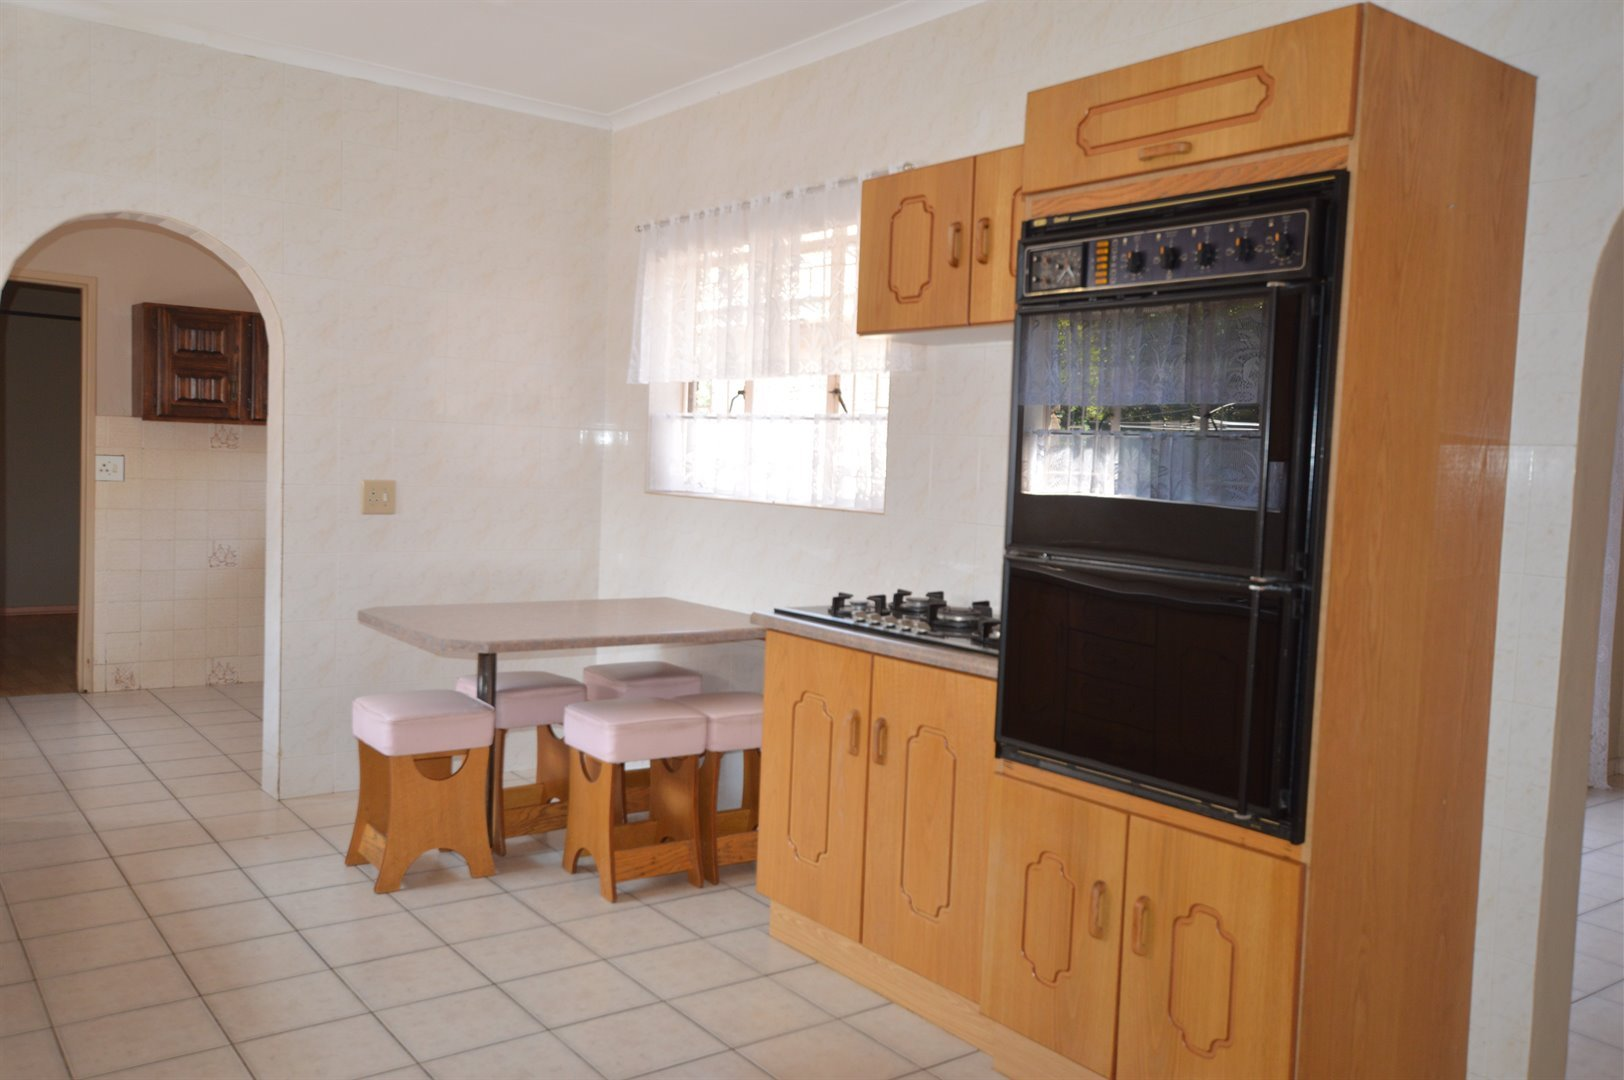 Vanderbijlpark Se 2 property for sale. Ref No: 13623209. Picture no 4